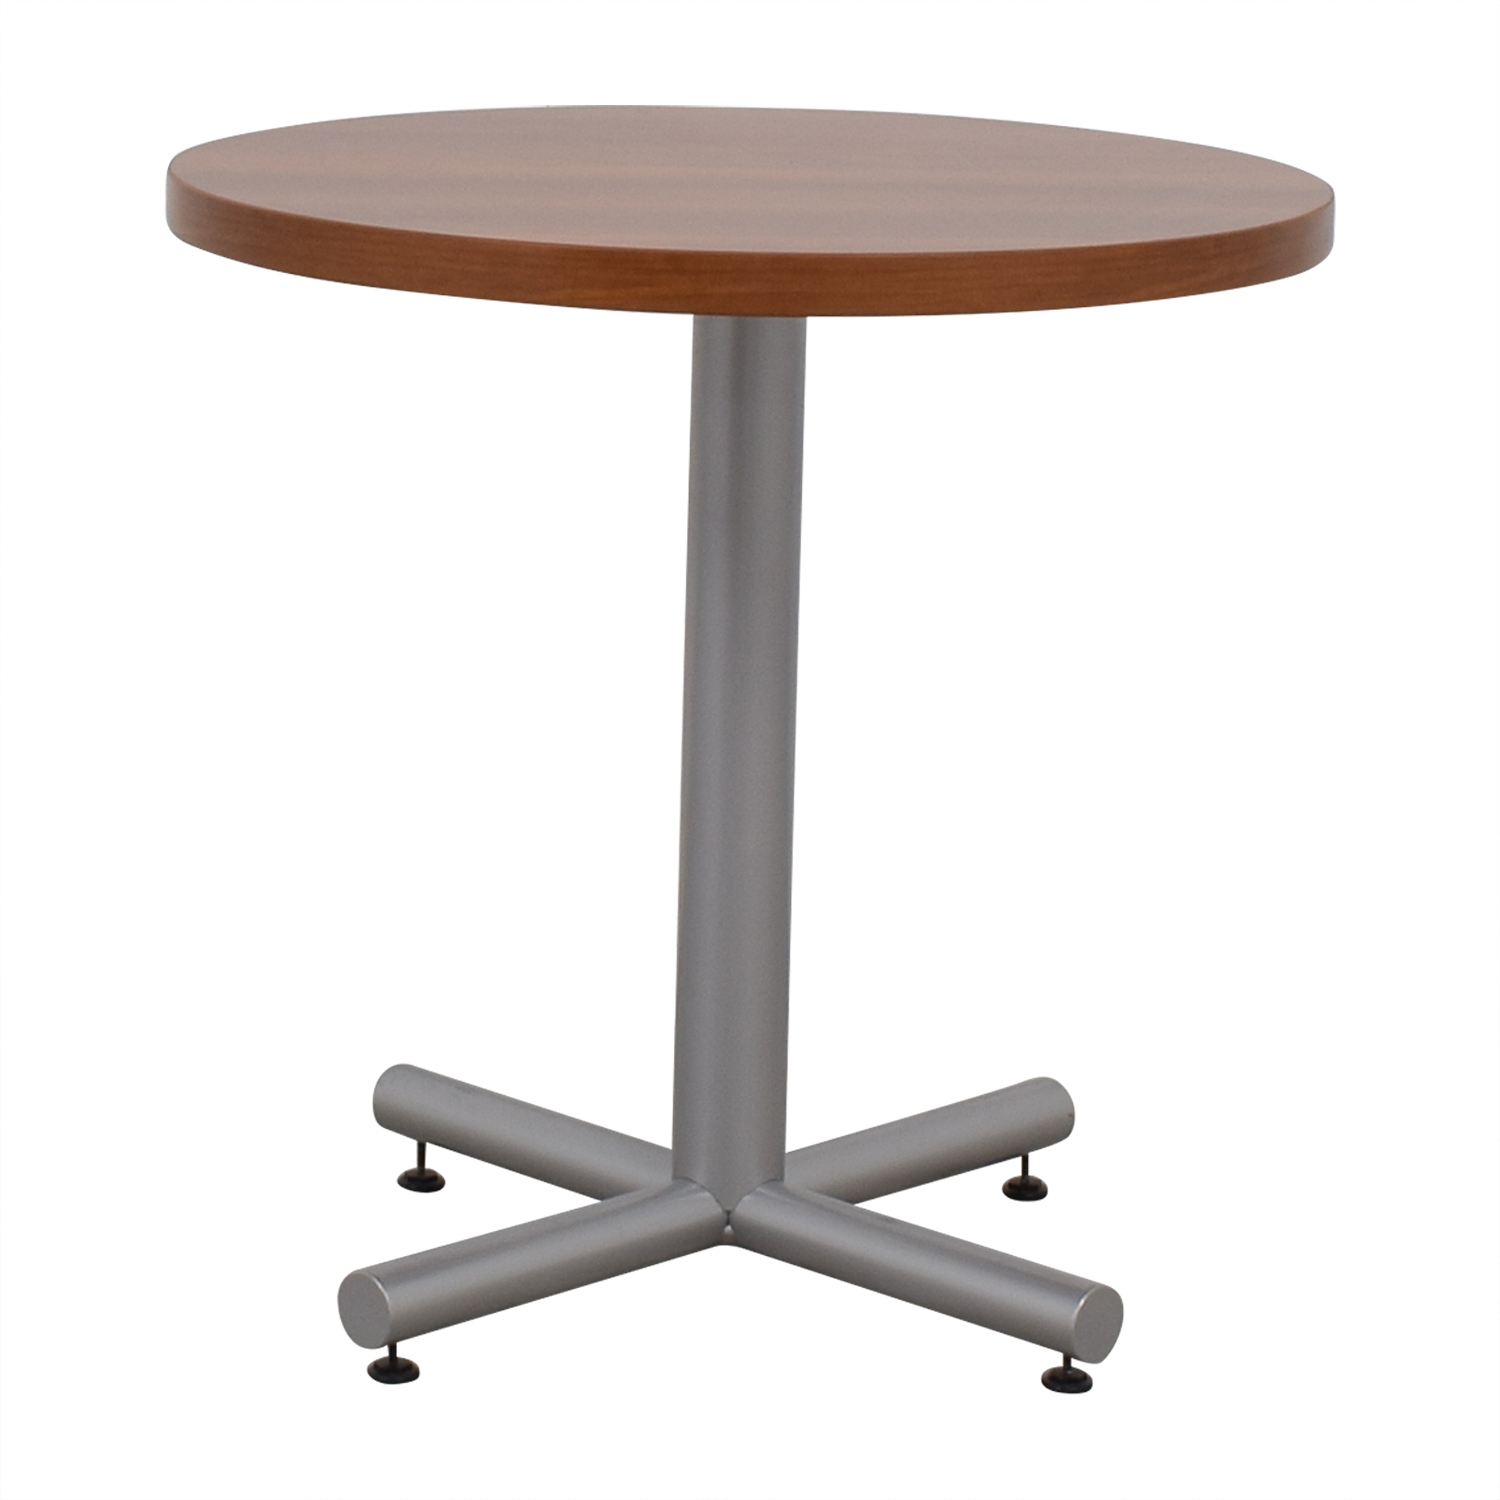 81% OFF   Small Round Office Table / Tables